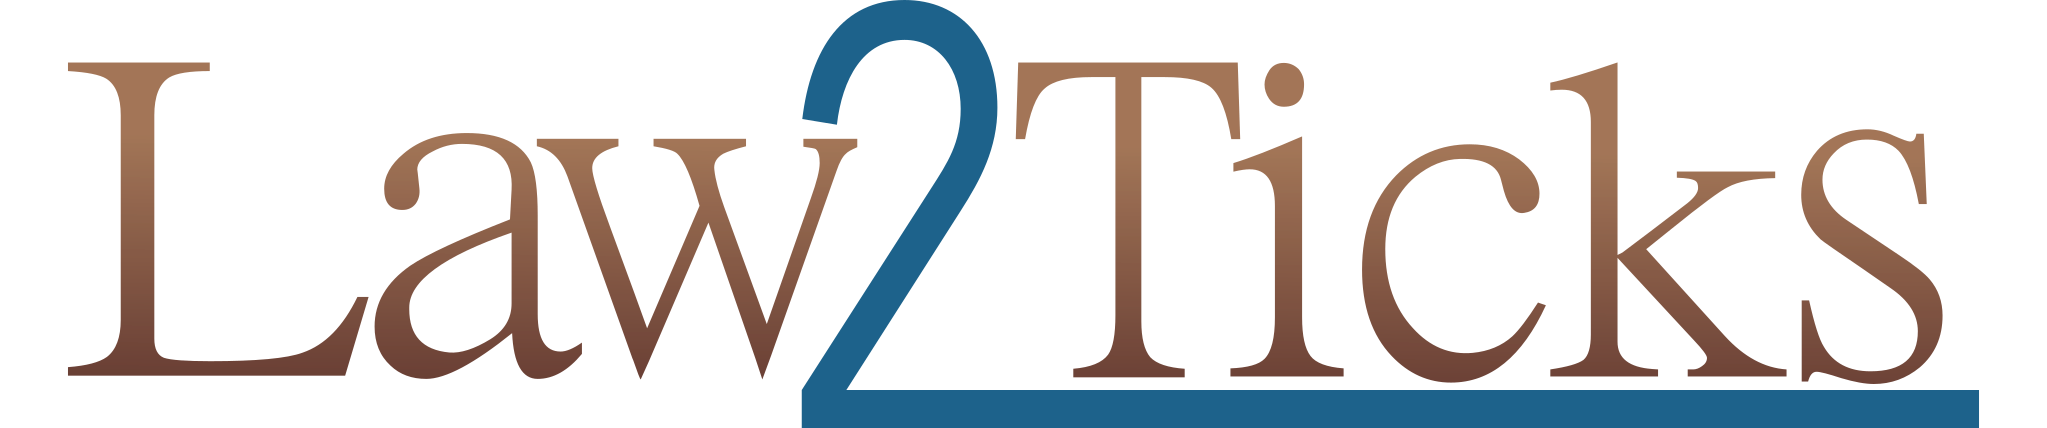 Law 2 Ticks Menu logo